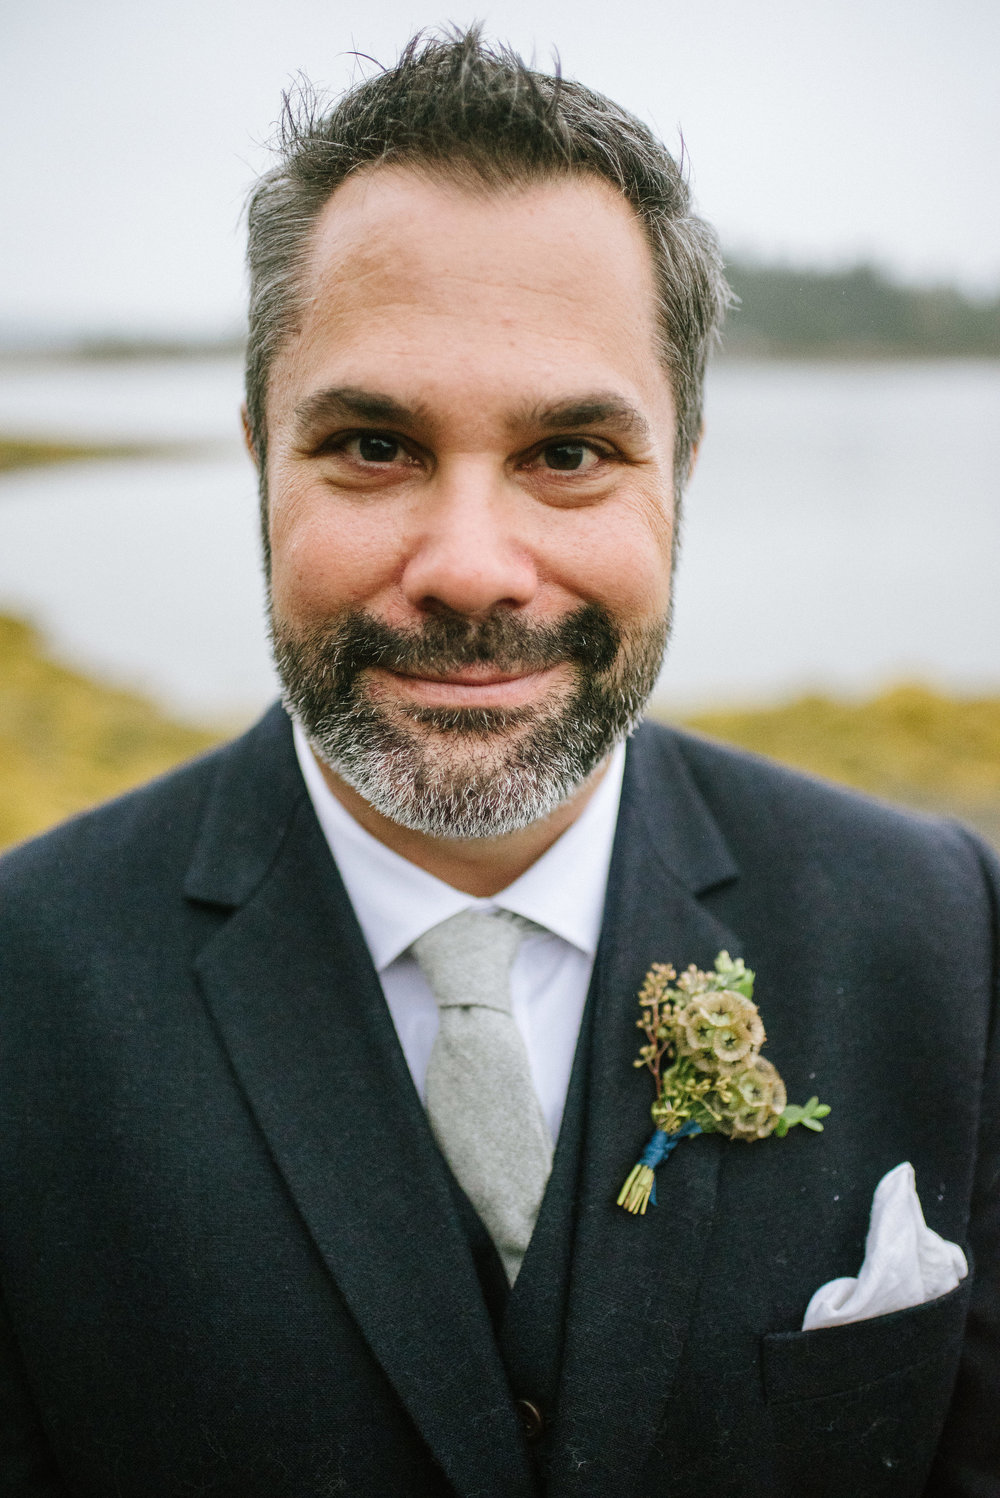 Watershed_Floral_Harpswell_Maine_Coastal_Wedding_0477.JPG